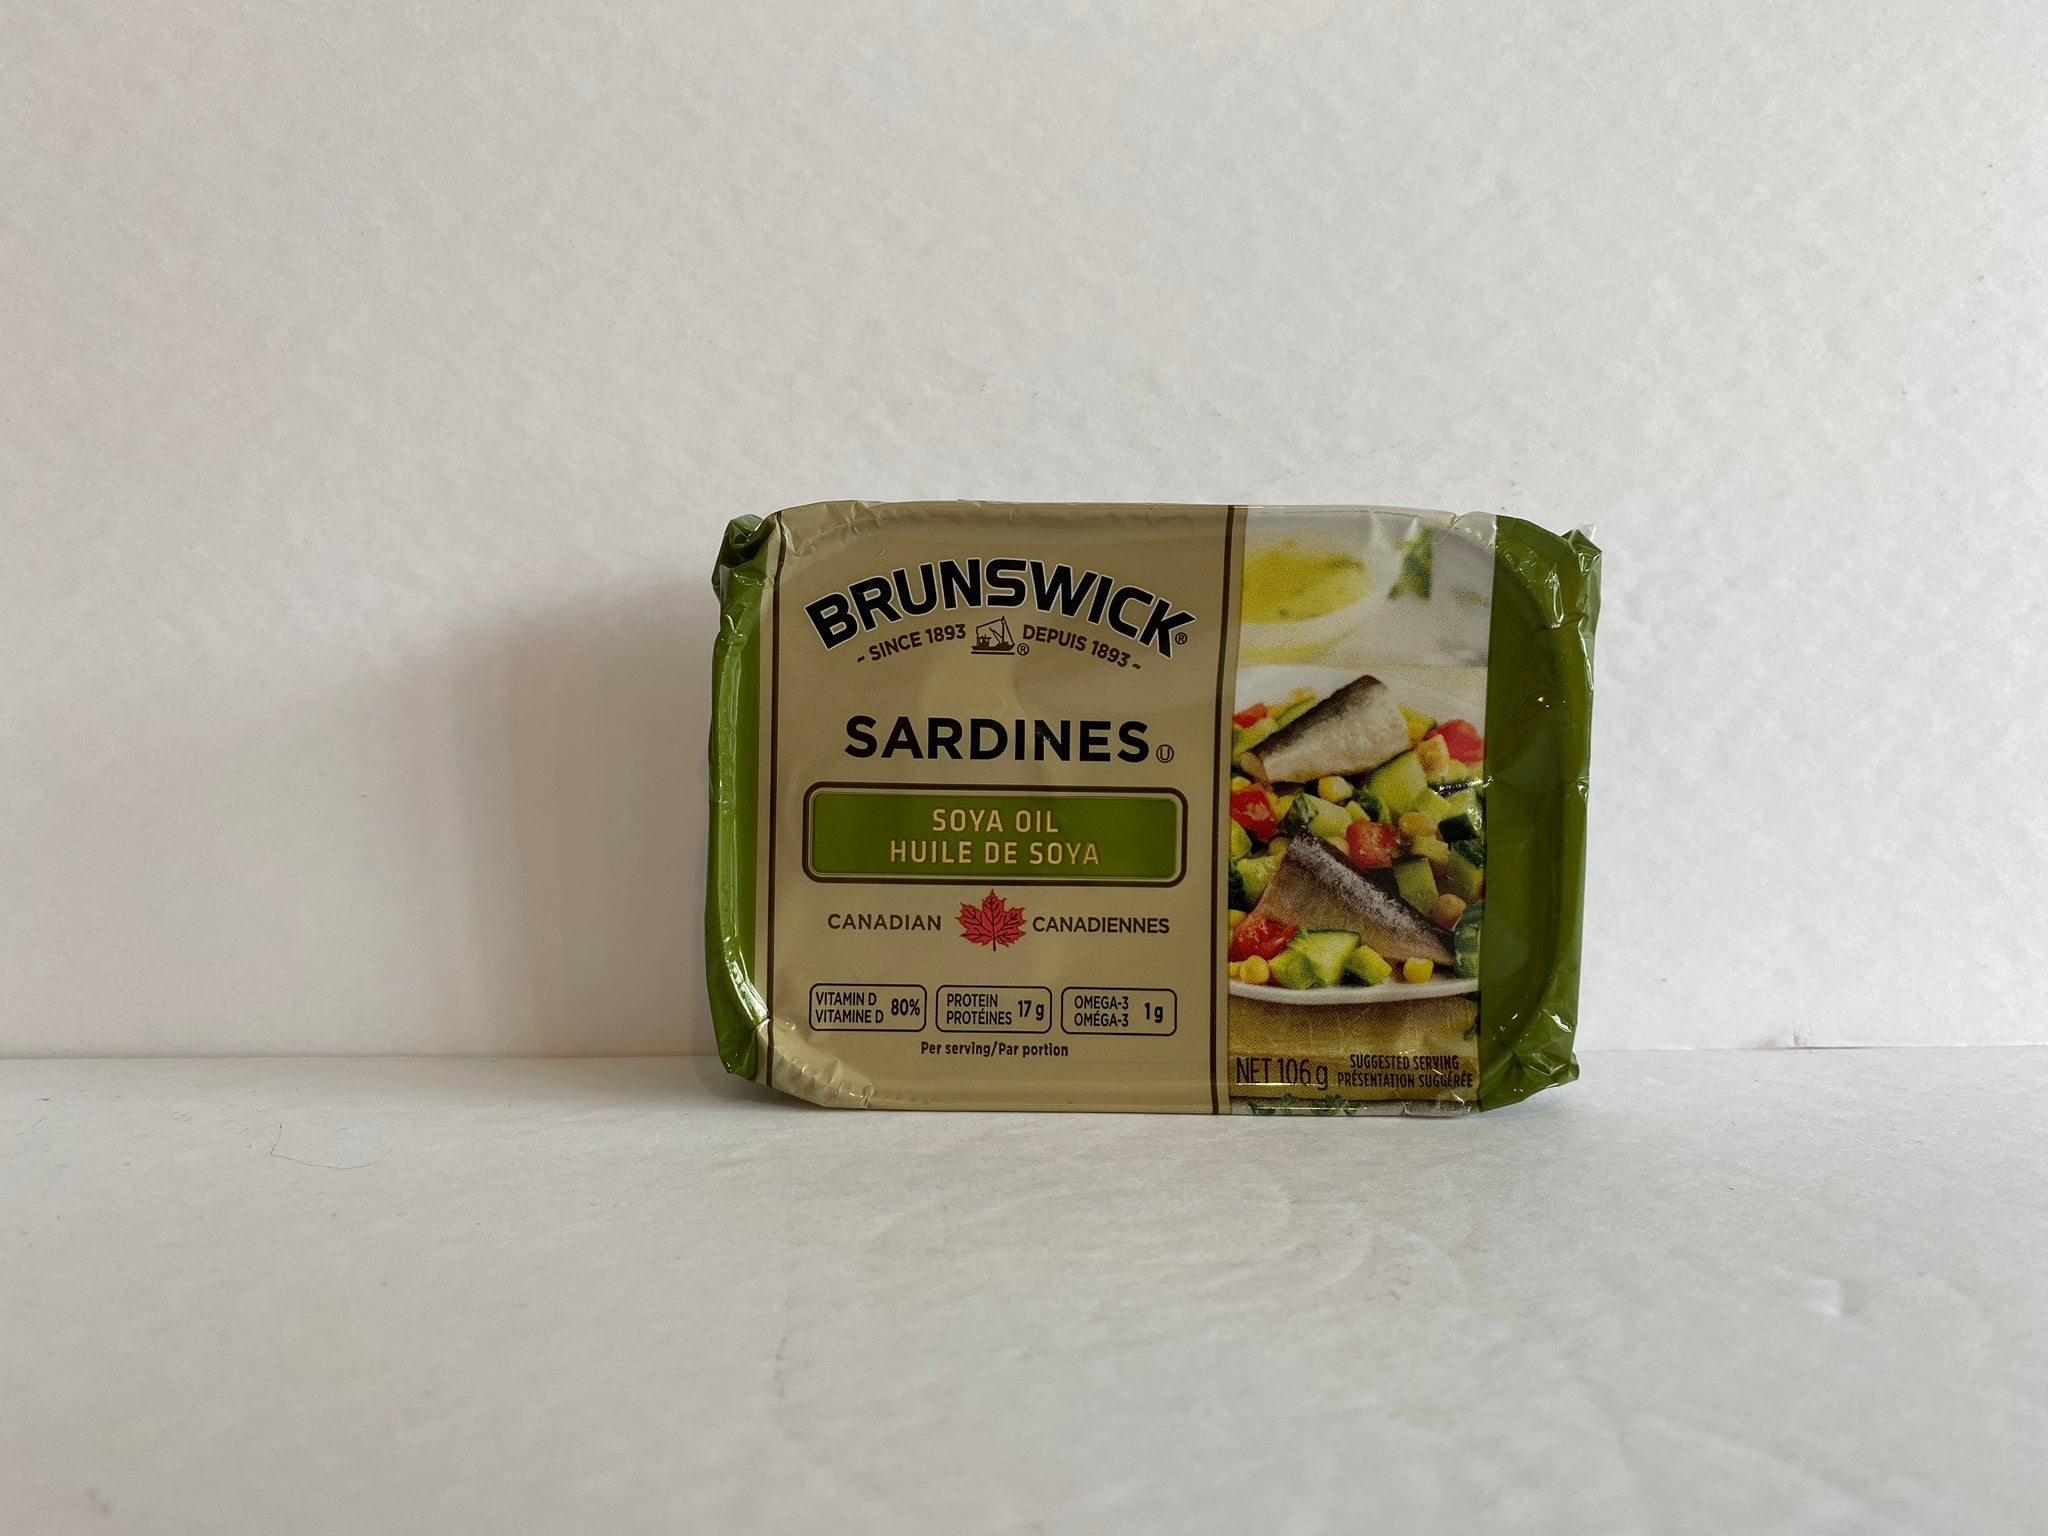 Brunswick Sardines in Soya Oil 106g